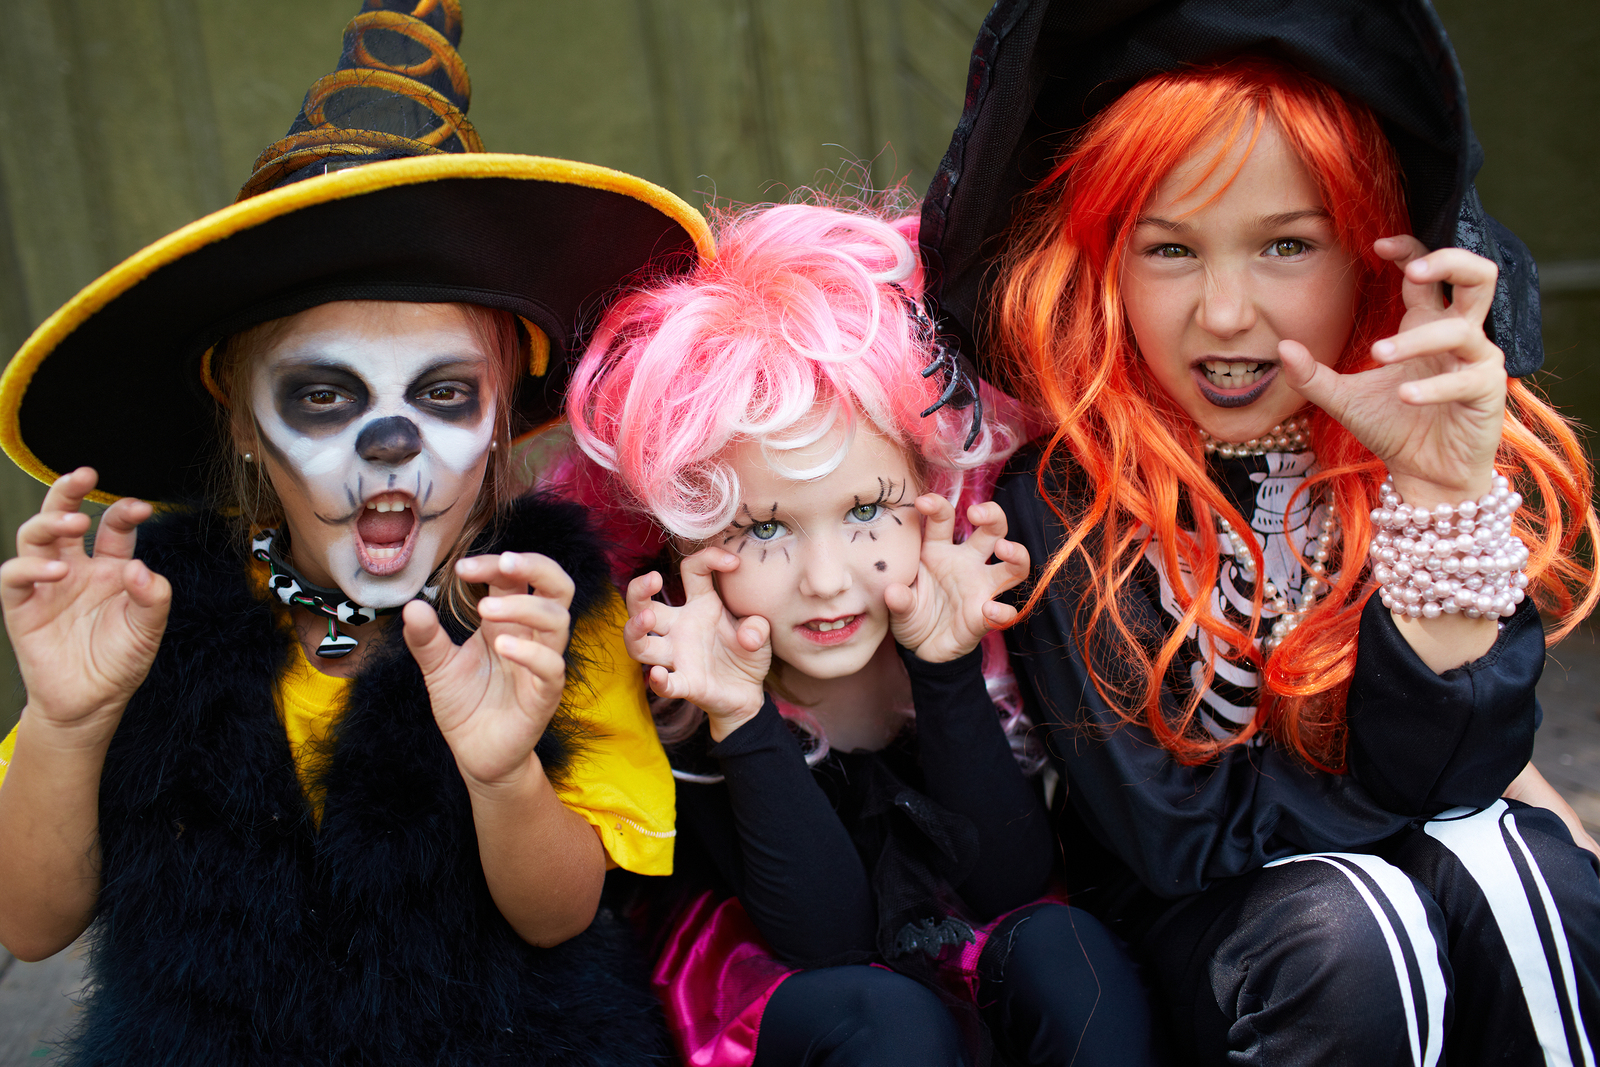 bigstock-Portrait-of-three-Halloween-gi-51433756